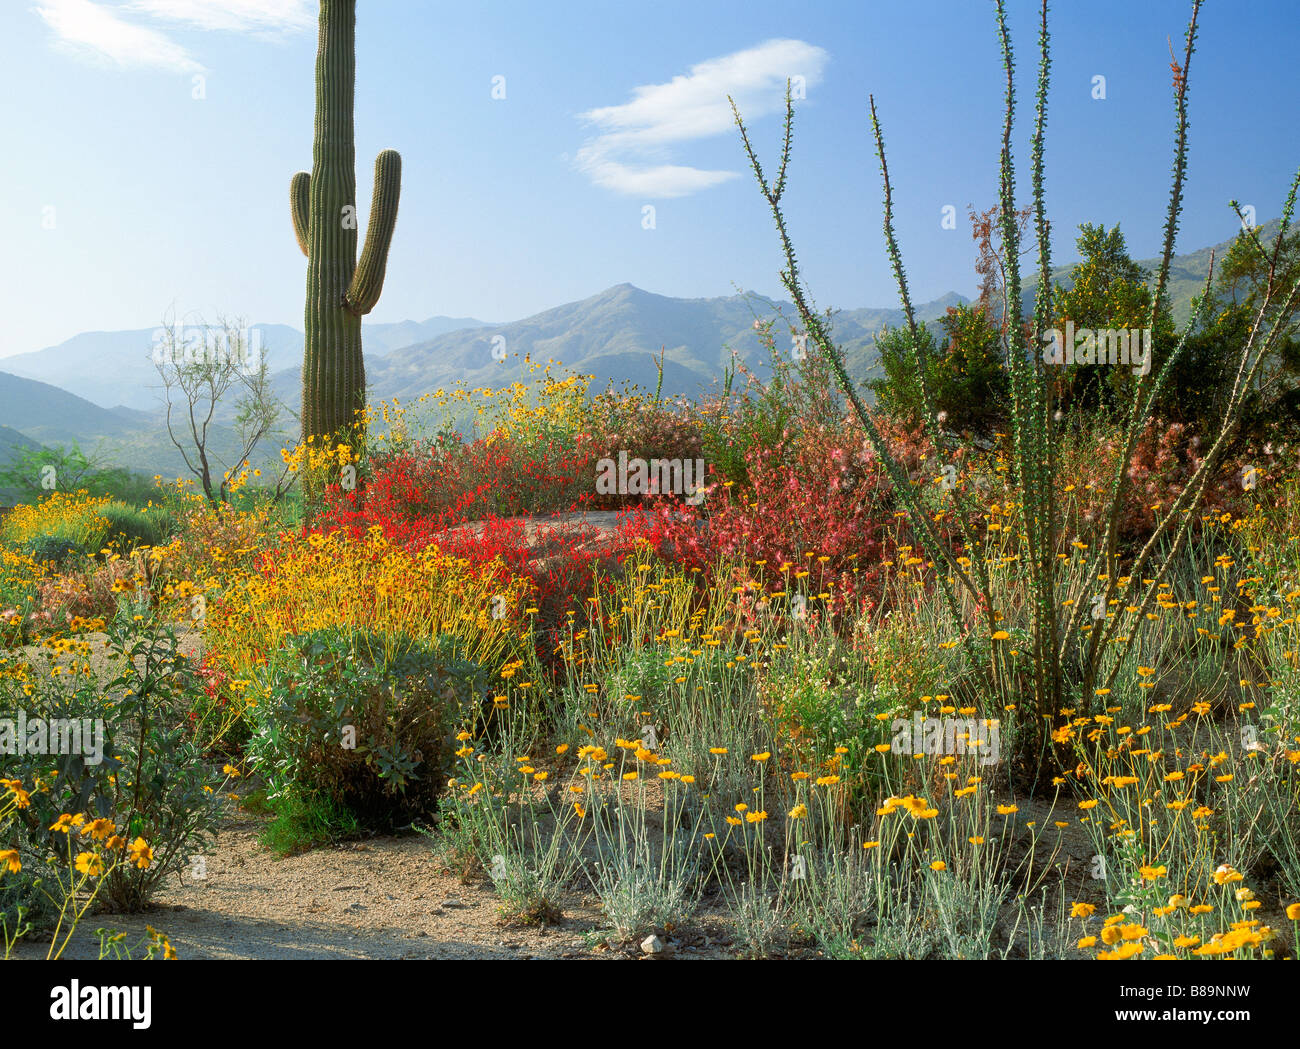 Desert flower palm springs images flower decoration ideas saguaro cactus and spring flowers below mountains in california saguaro cactus and spring flowers below mountains mightylinksfo Images